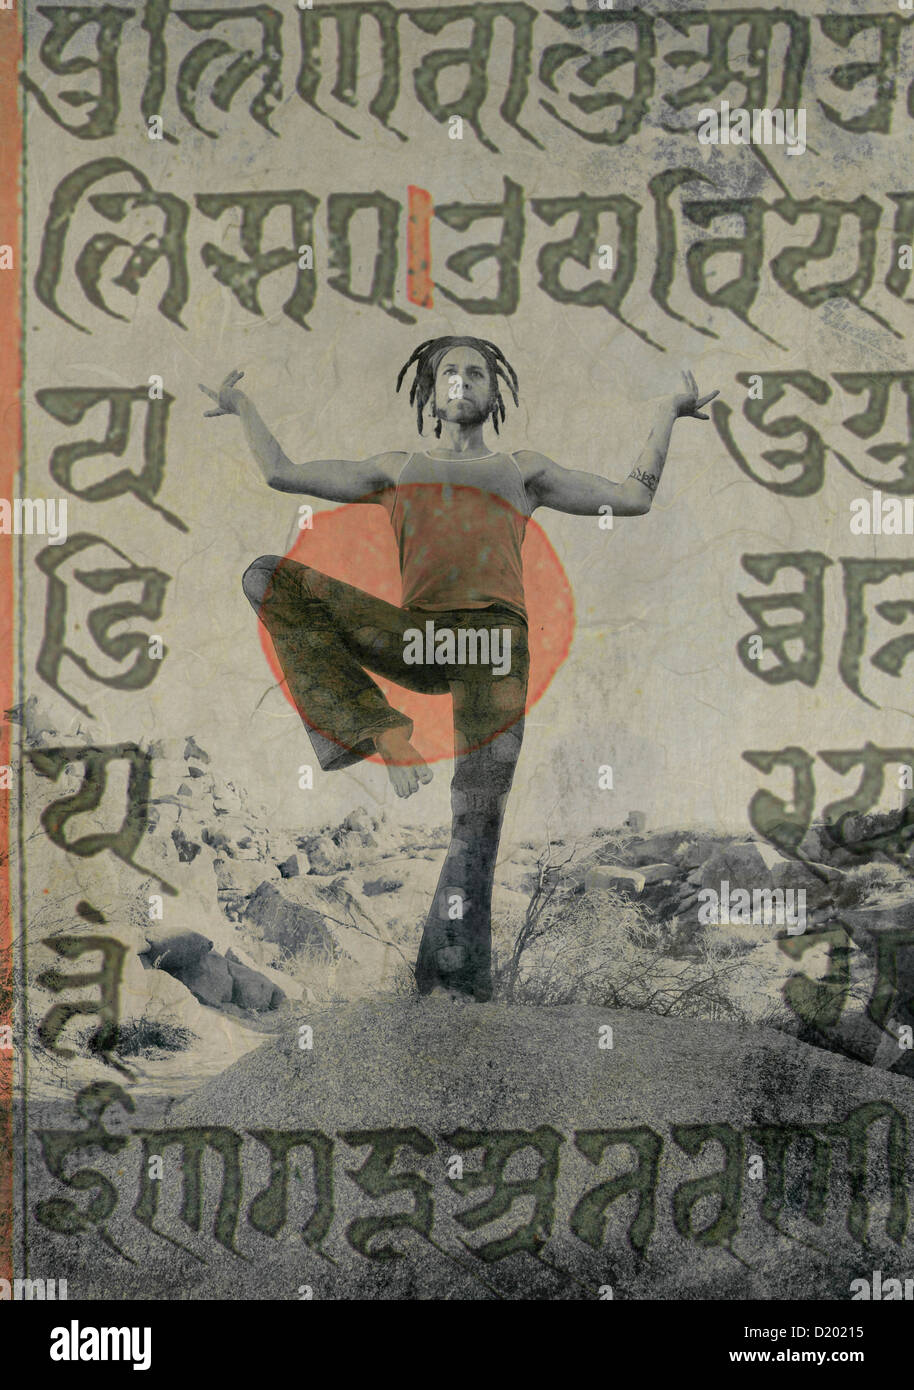 Yogi Shiva dancer with ancient sacred sanskrit writings overlaid. - Stock Image